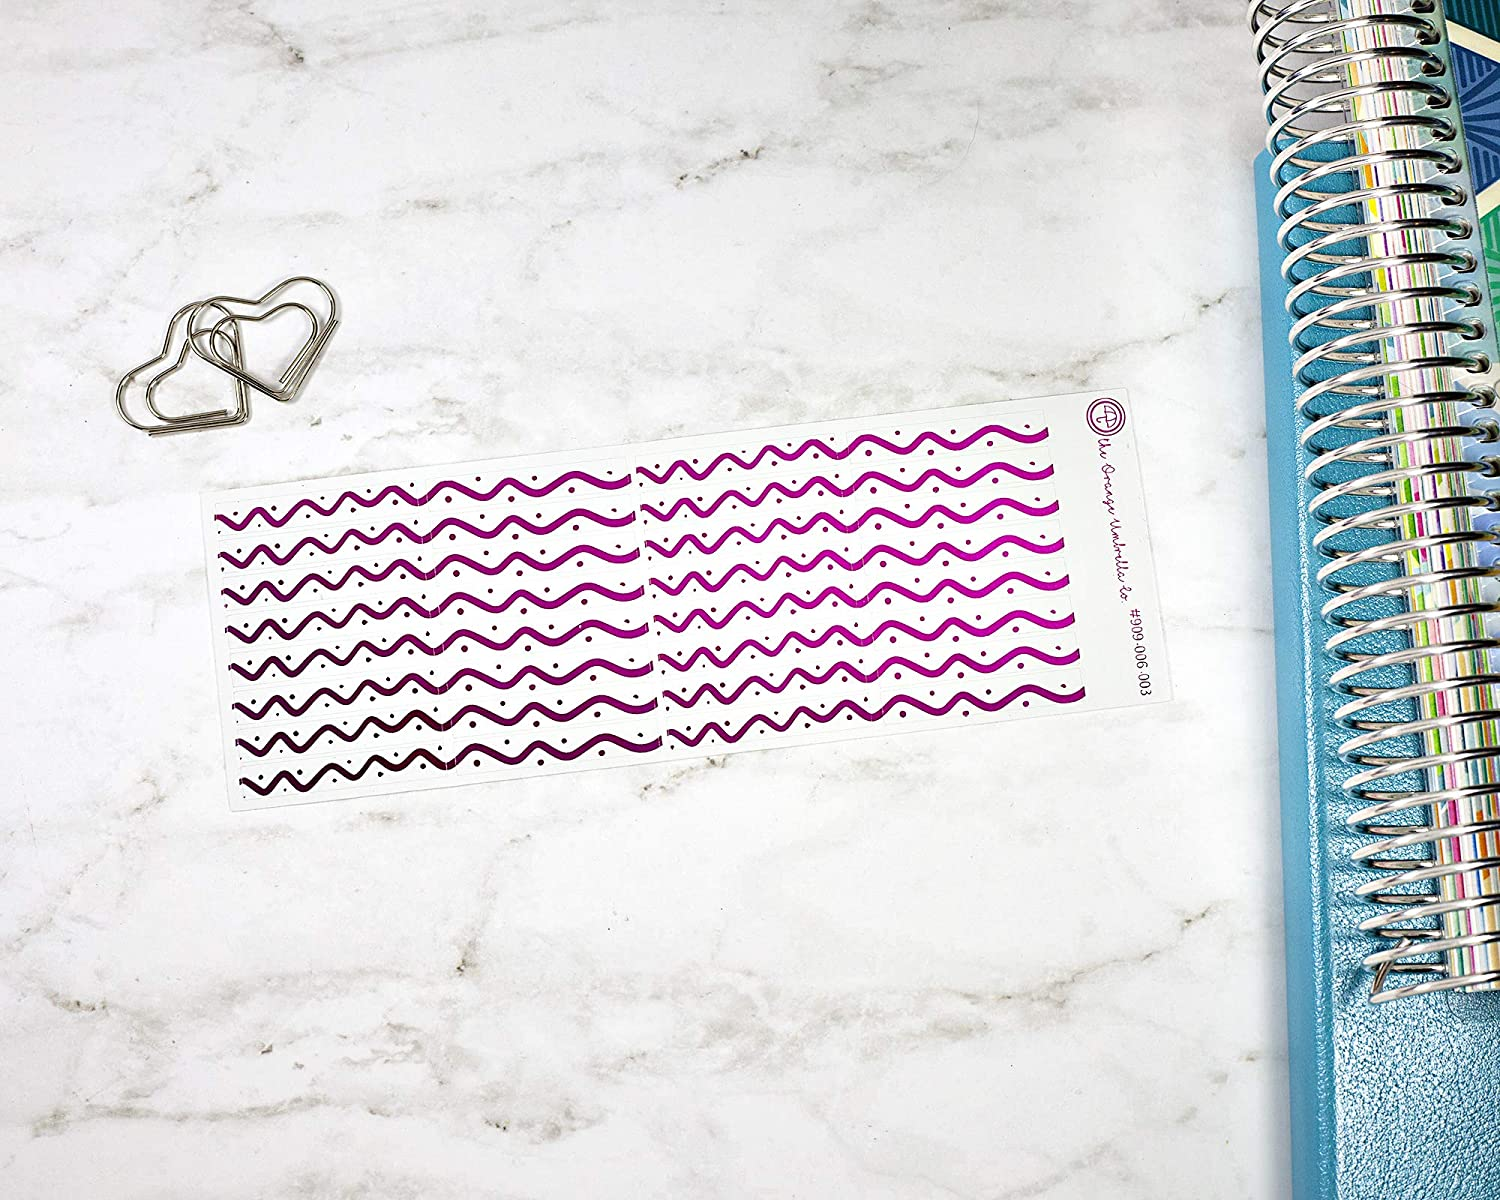 #909-006-003-F Abstract Line Foil Color Foil Divider Stickers for ECLP Foiled Header Planner Stickers